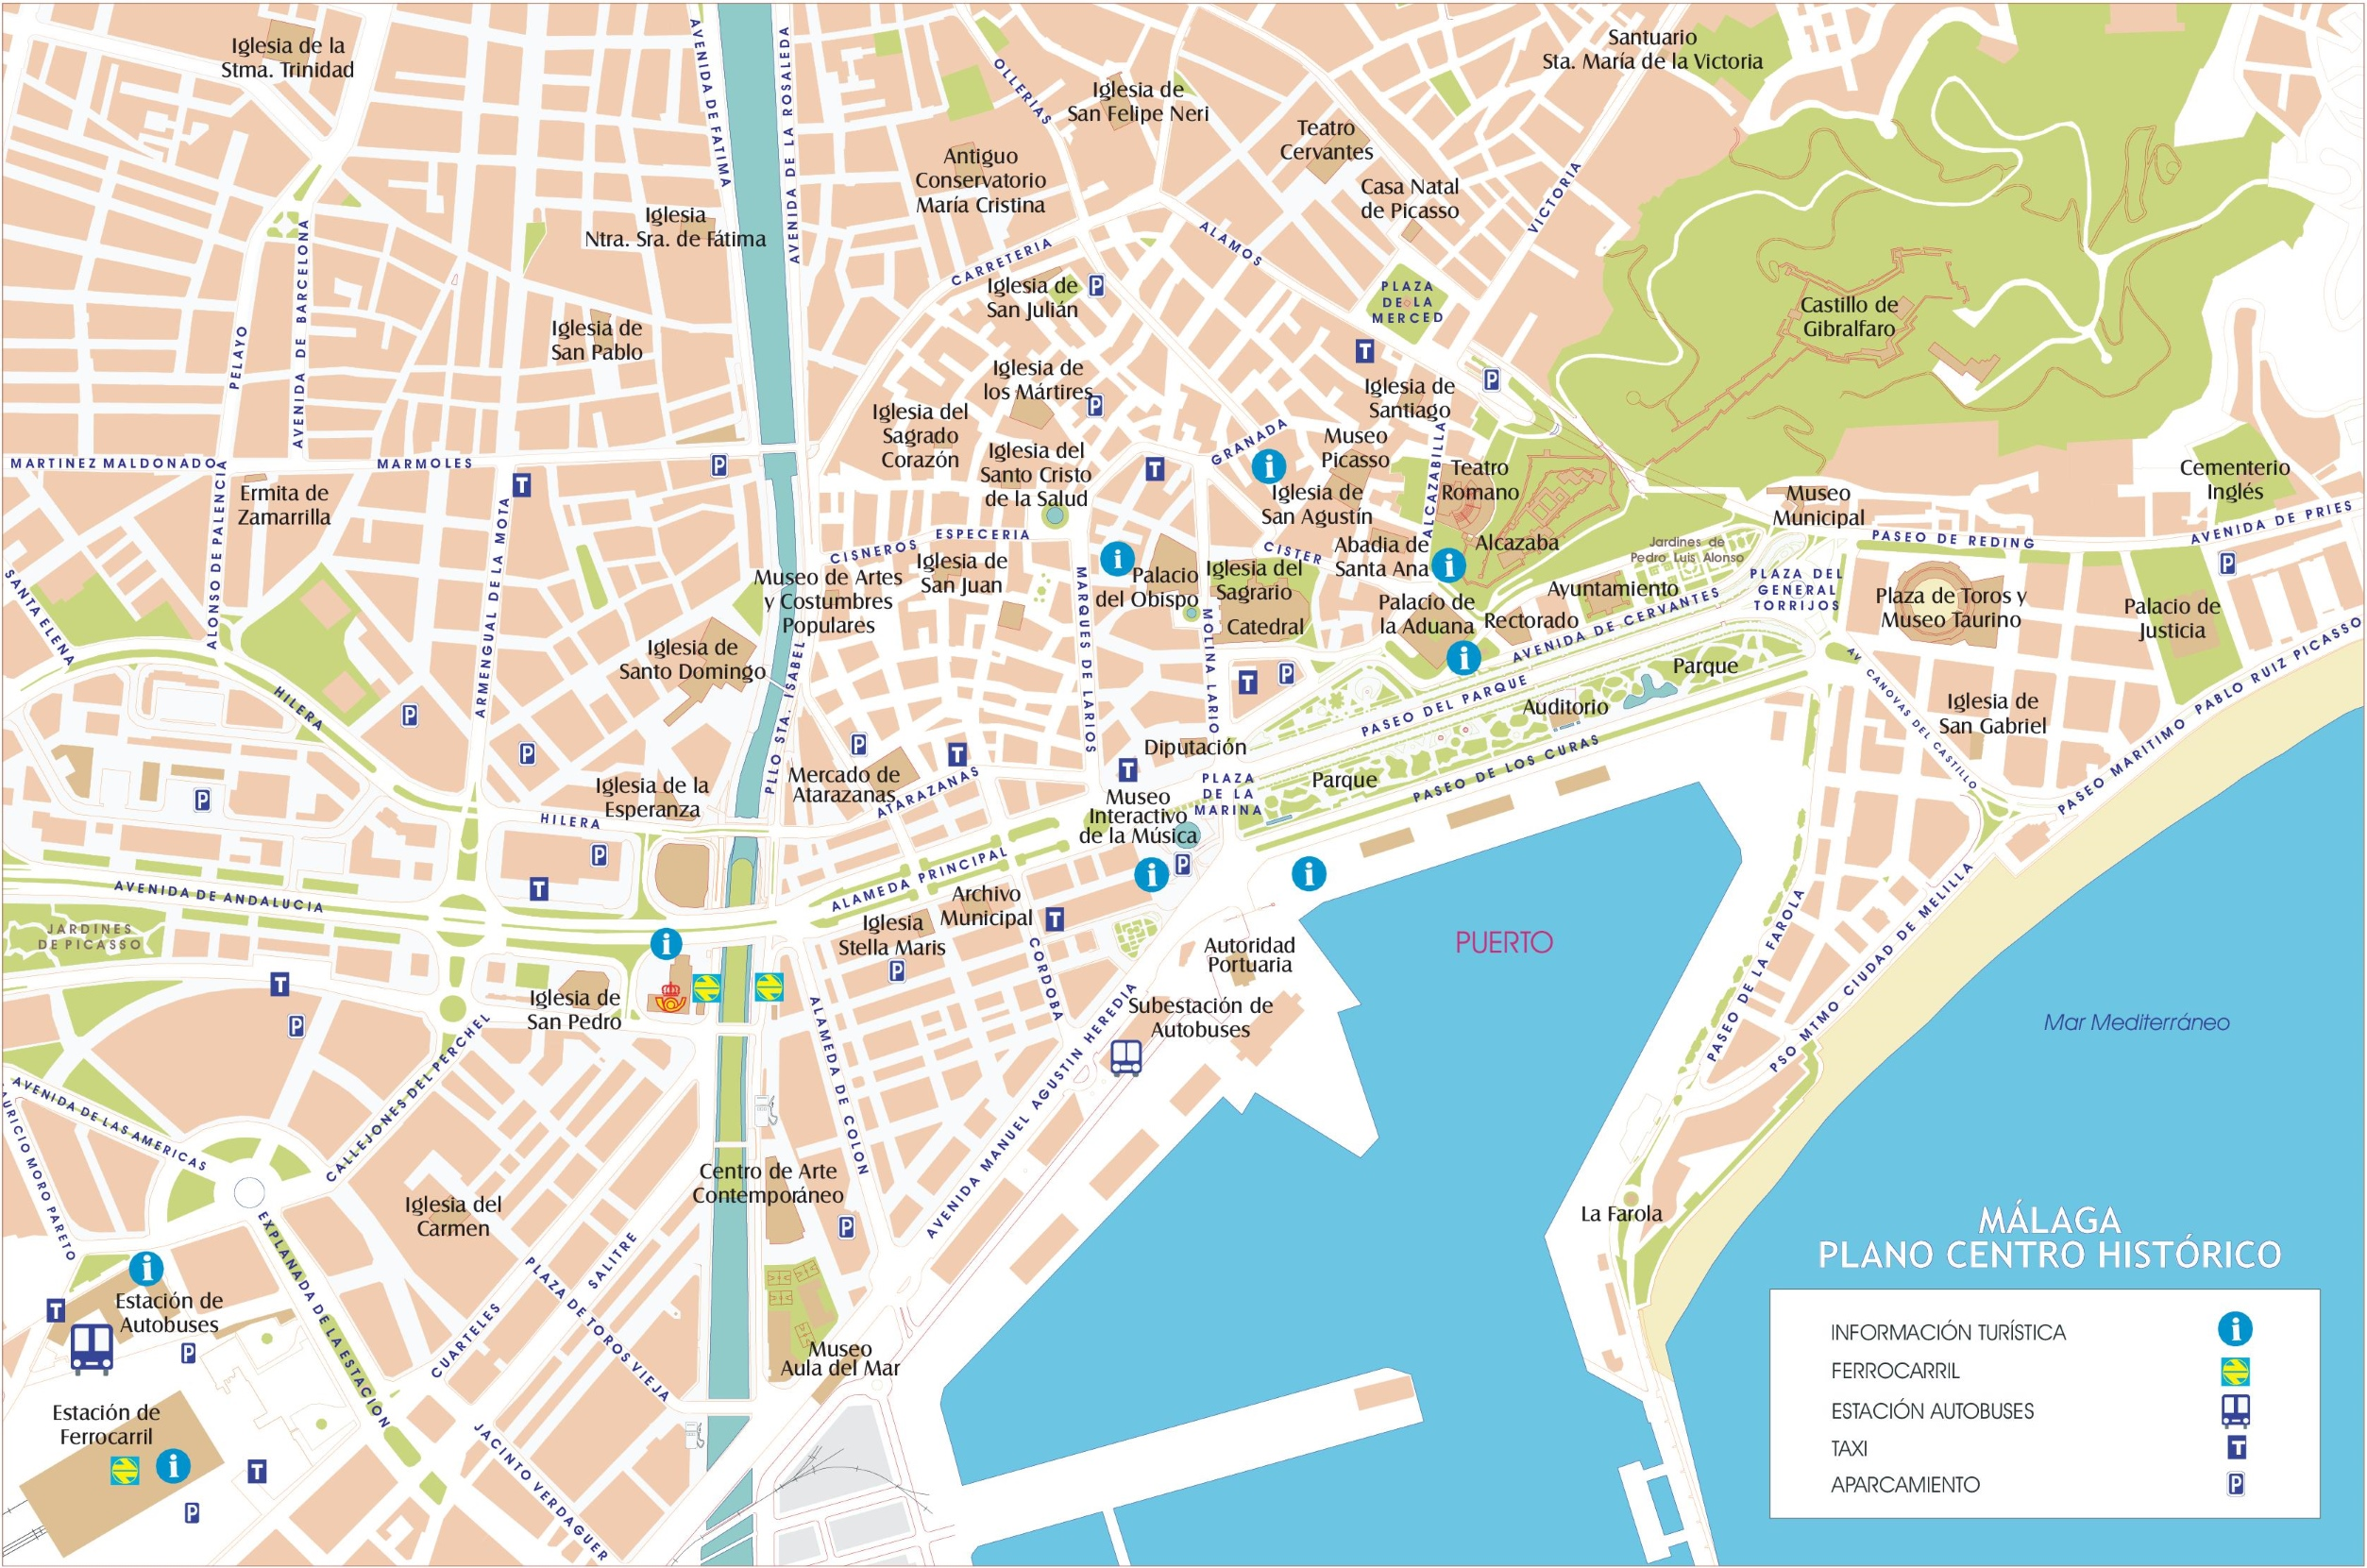 Malaga street map on map of irun spain, map of maspalomas spain, map of gava spain, map of toledo spain, map of spain major cities, map of santillana spain, map of ribera del duero spain, map of la manga spain, map of nerja spain, large map of spain, map of spain with regions, map of priorat spain, map of santander spain, map of sanlucar spain, map of ciudad real spain, map of rioja region spain, map of torrejon spain, map of palamos spain, map of cadiz spain, map of porto spain,